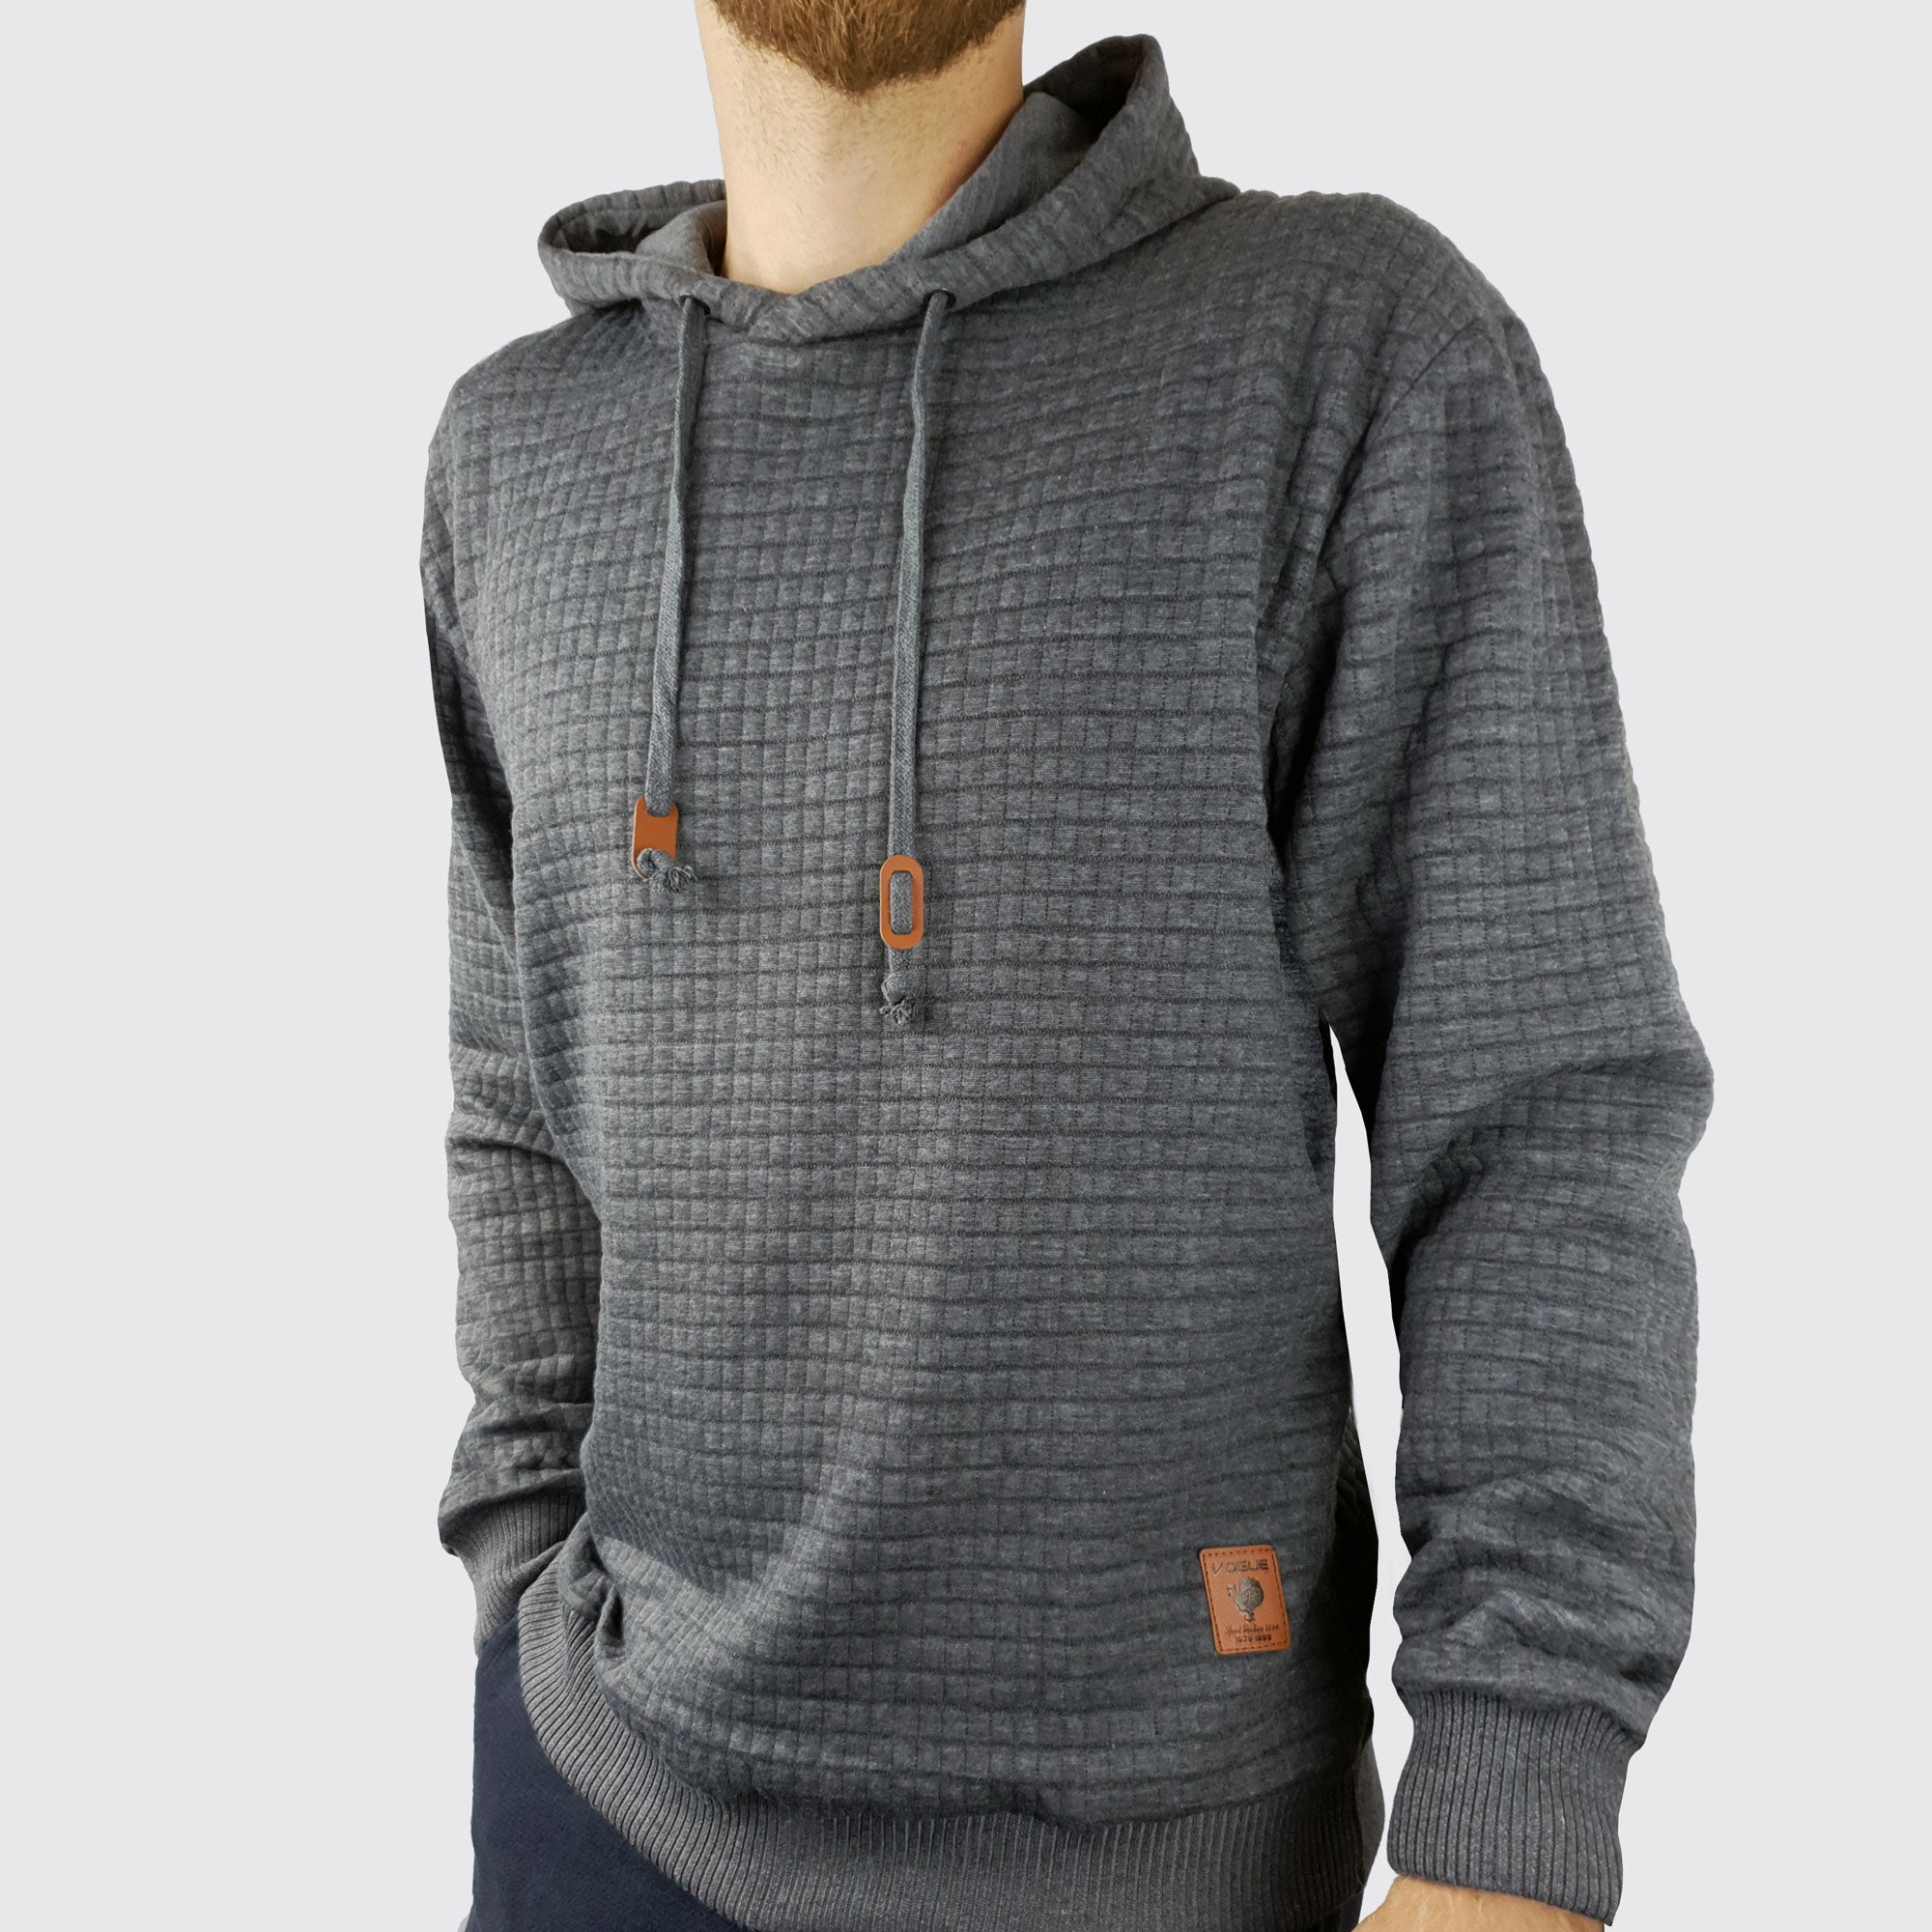 Nathan Textured Hoodie - Charcoal - Blu Apparel